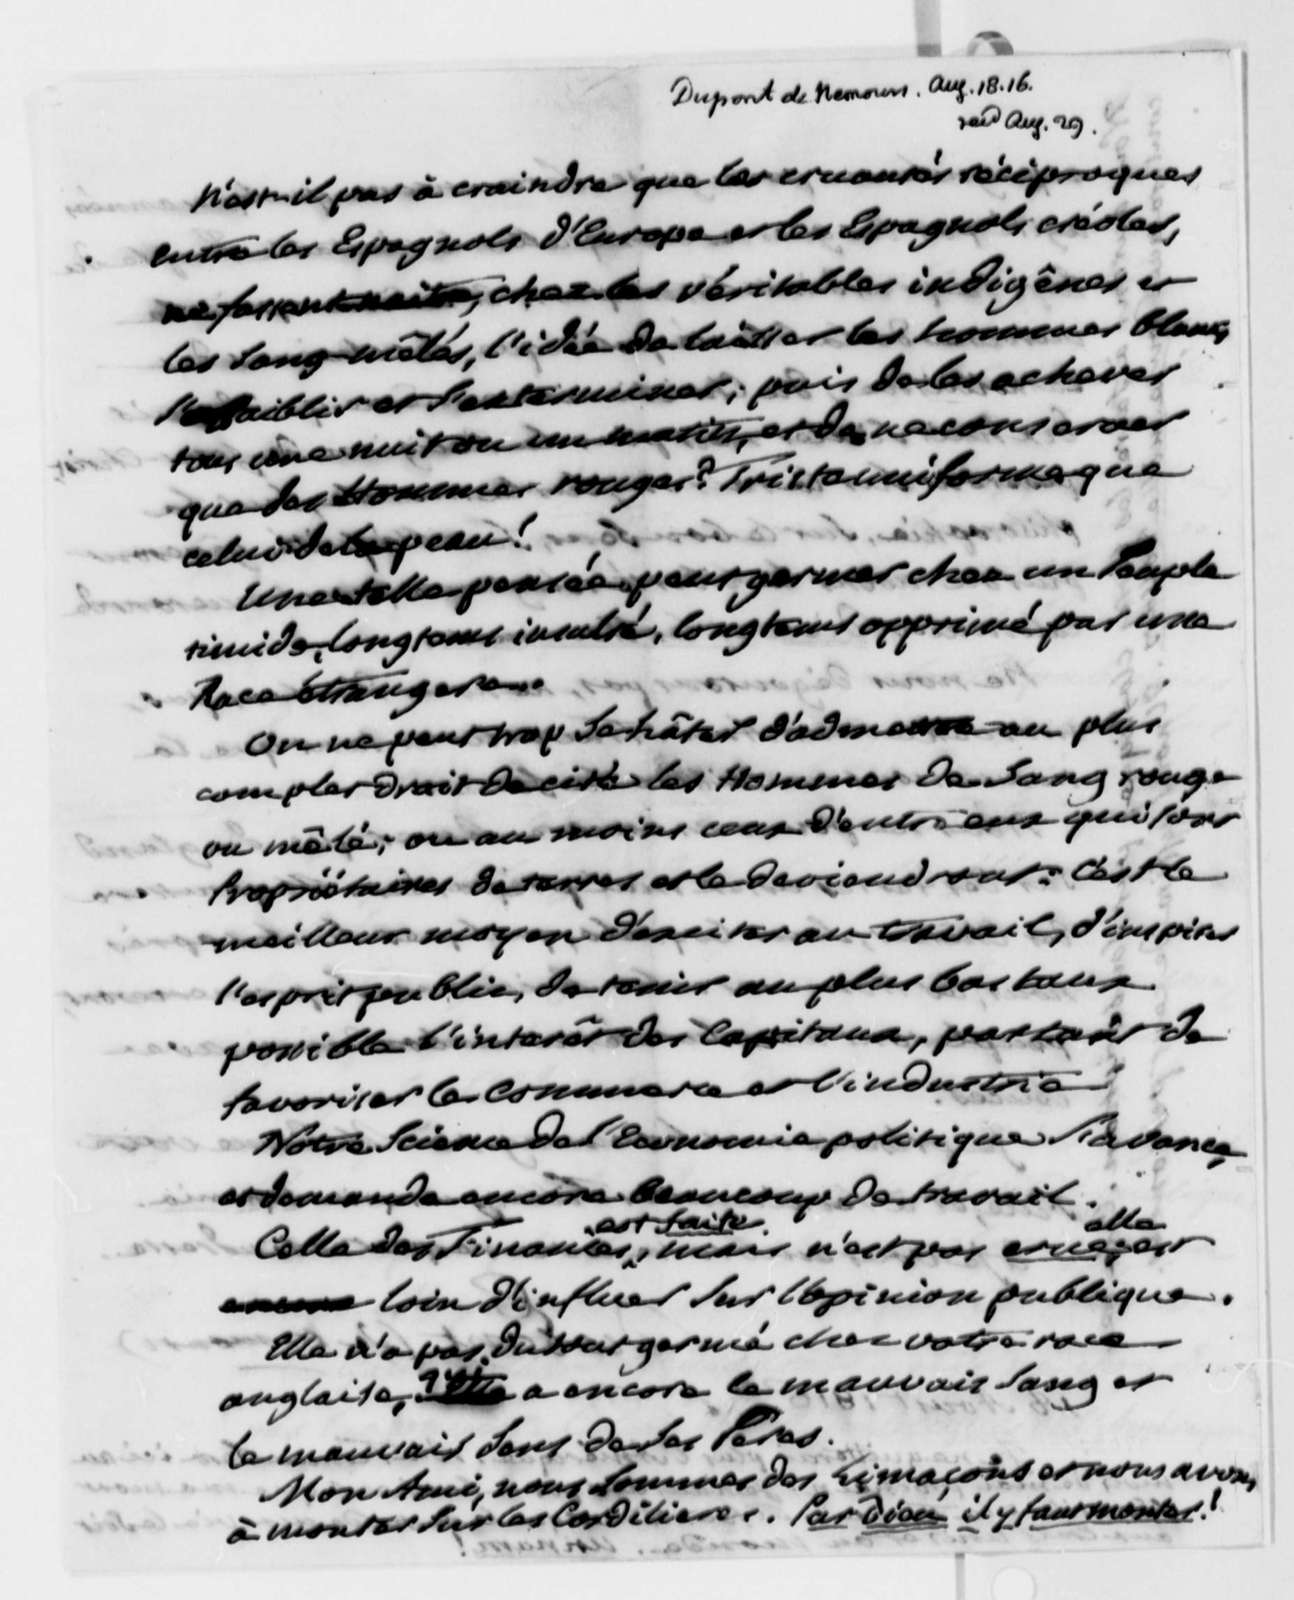 Pierre S. Dupont de Nemours to Thomas Jefferson, August 18, 1816